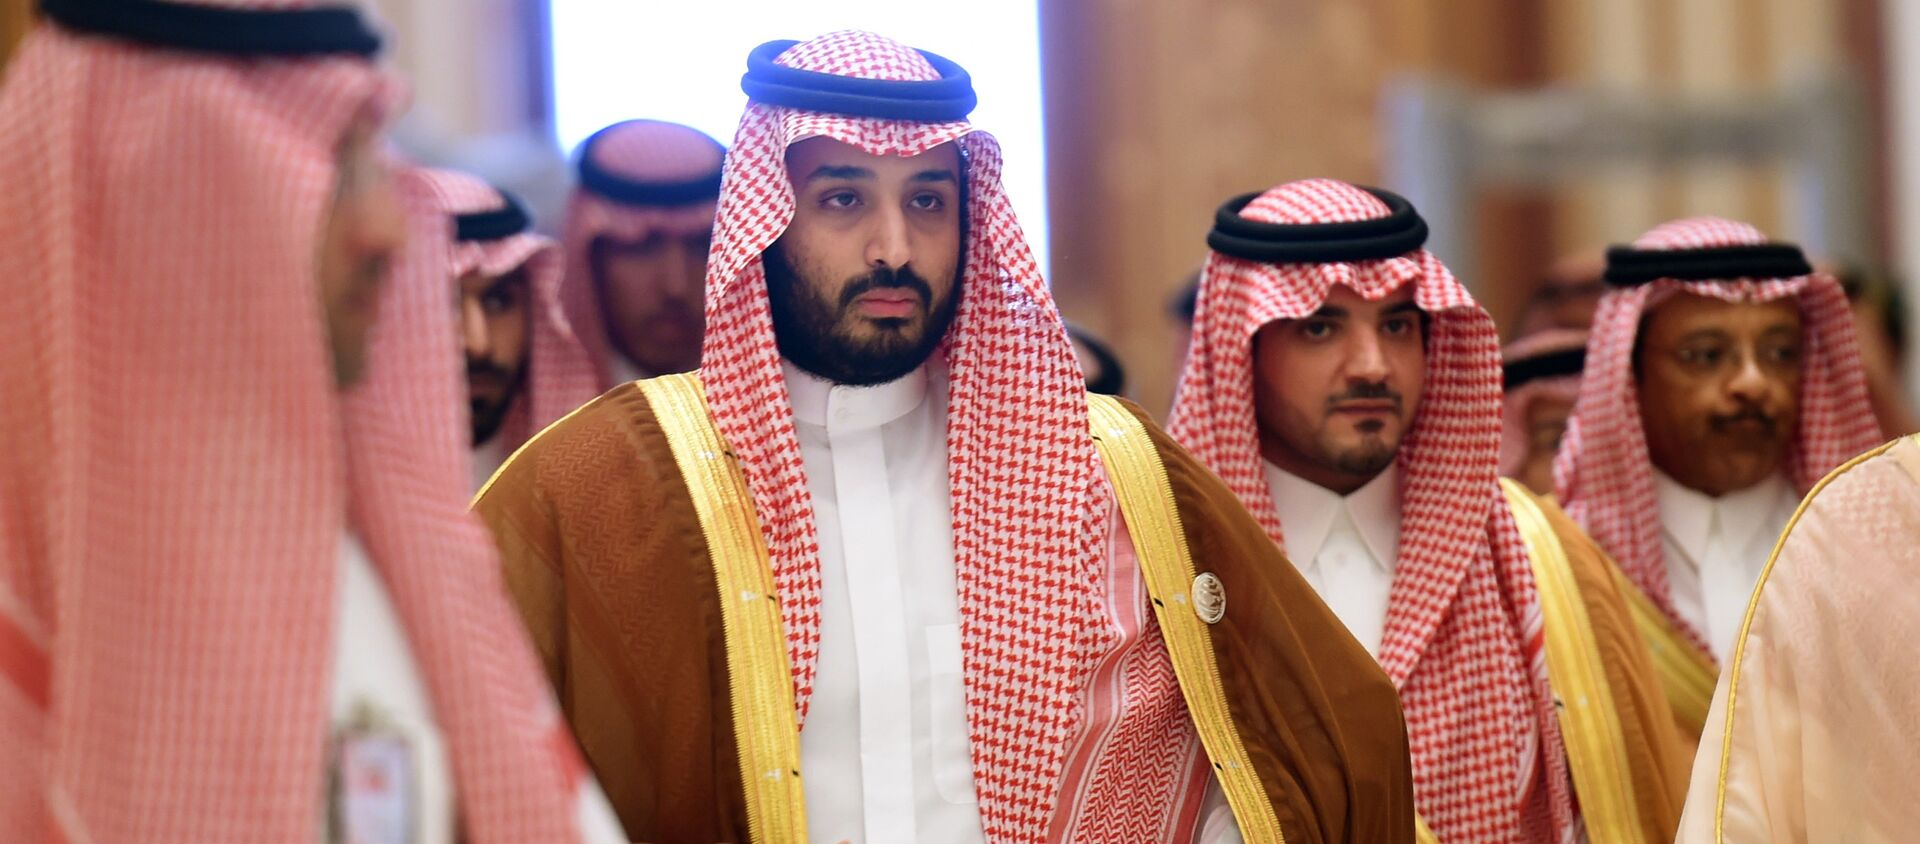 Saudi Defence Minister Mohammed bin Salman (2nd L), who is the desert kingdom's deputy crown prince and second-in-line to the throne, arrives at the closing session of the 4th Summit of Arab States and South American countries held in the Saudi capital Riyadh, on November 11, 2015 - Sputnik Việt Nam, 1920, 21.03.2021